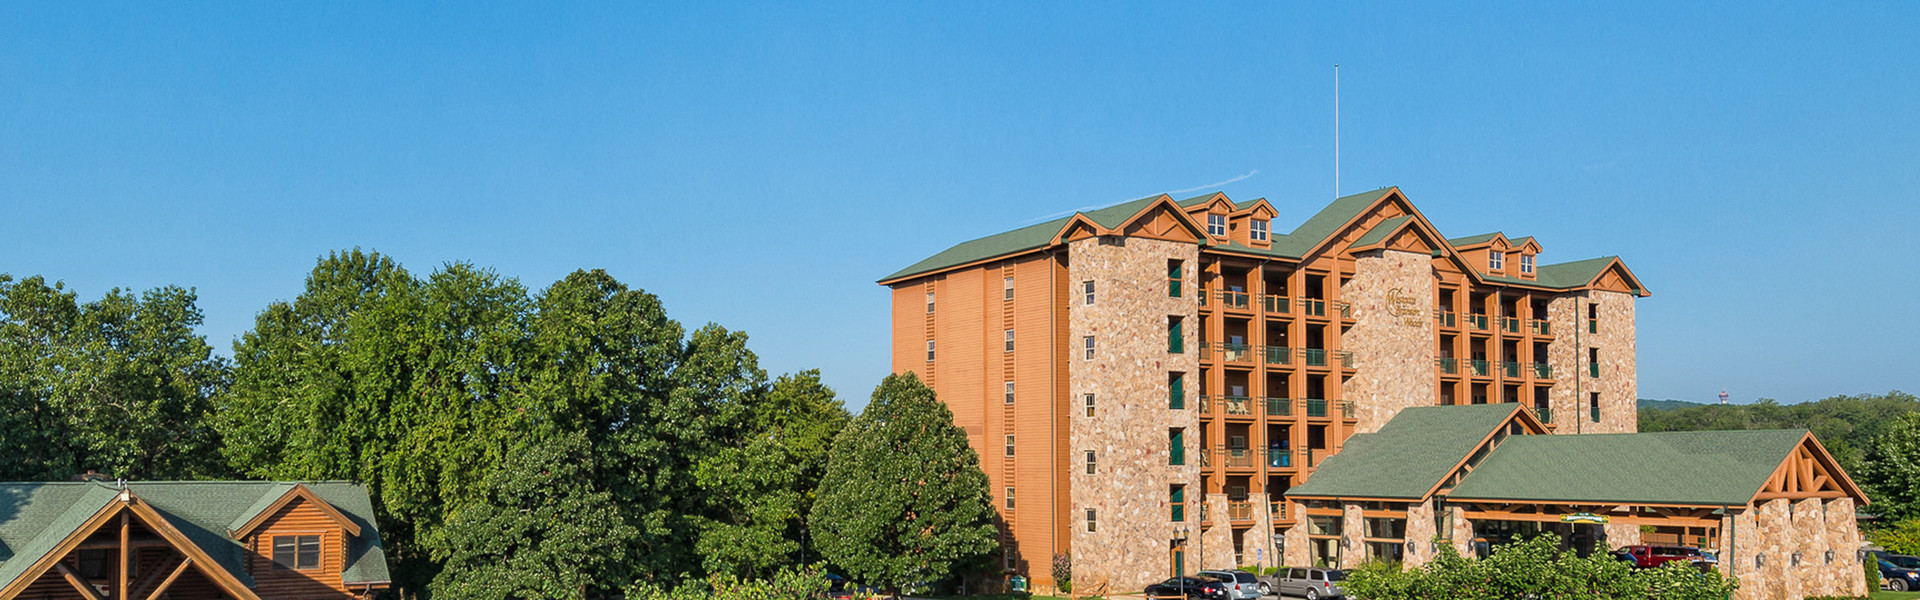 Branson Activities at our Hotel near Roark Valley Road | Westgate Branson Woods Resort